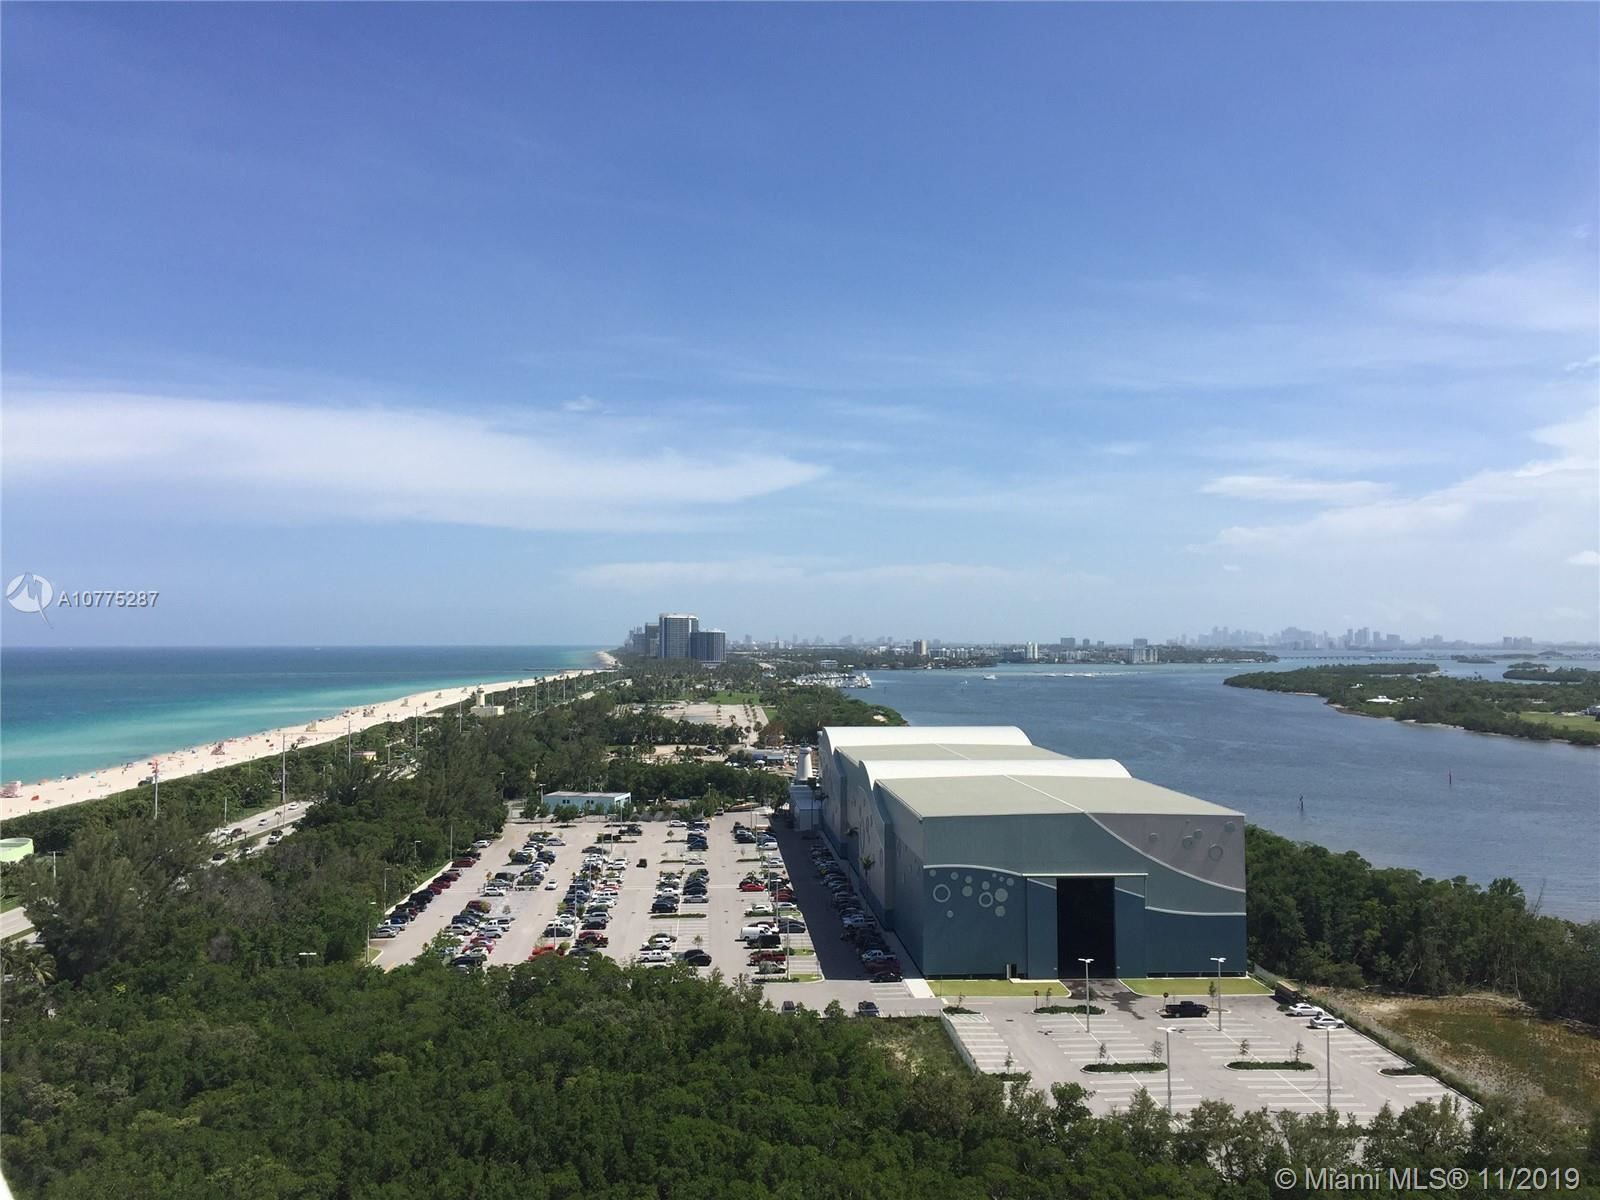 Photo of 100 Bayview Dr #2020, Sunny Isles Beach, FL 33160 (MLS # A10775287)